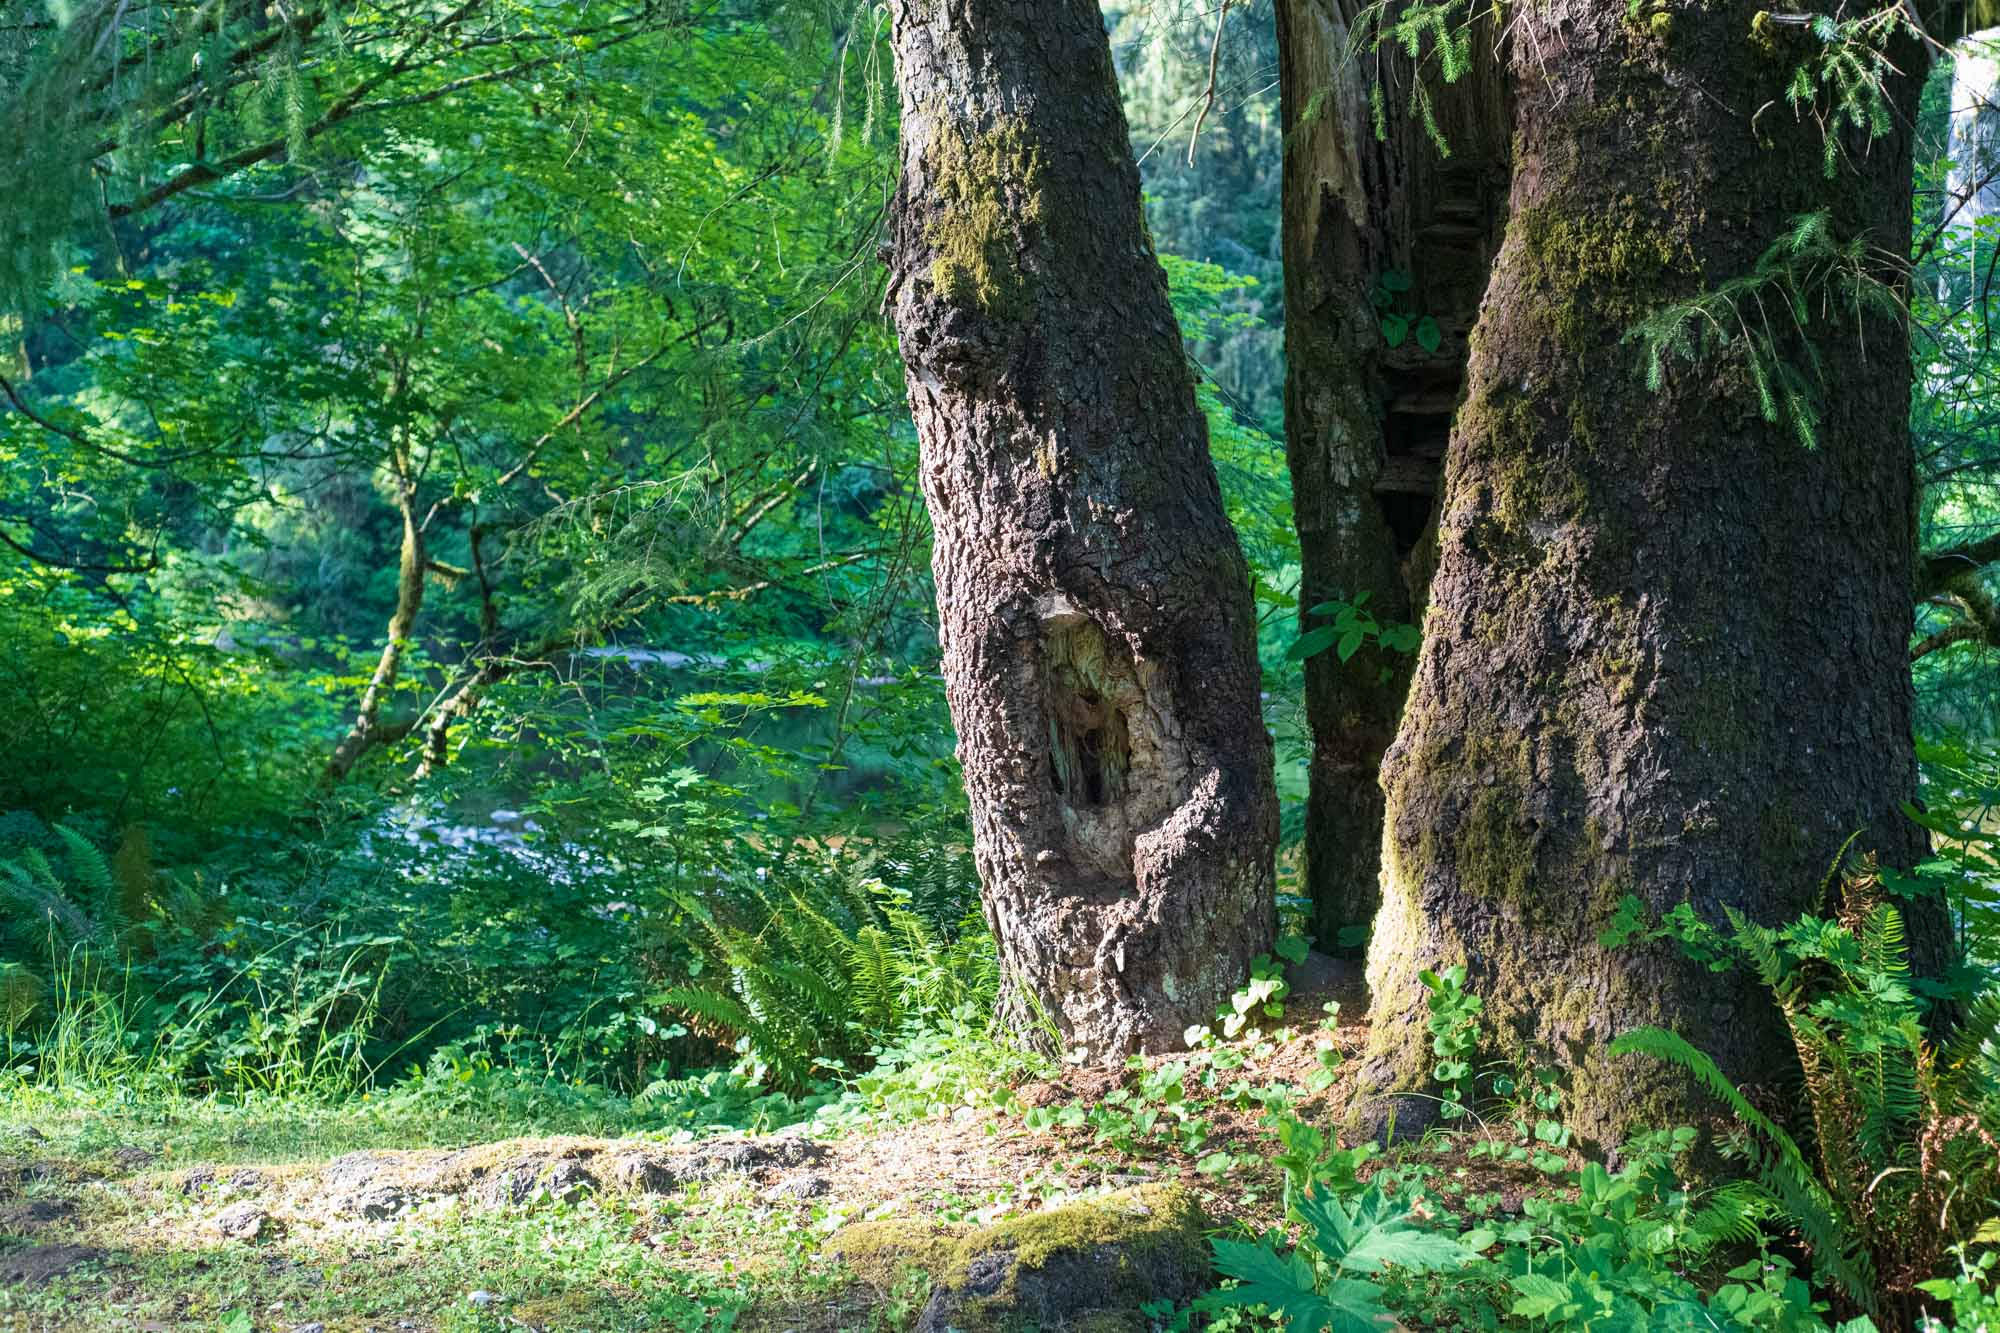 three trees stand in a lush forest, tightly bunched together